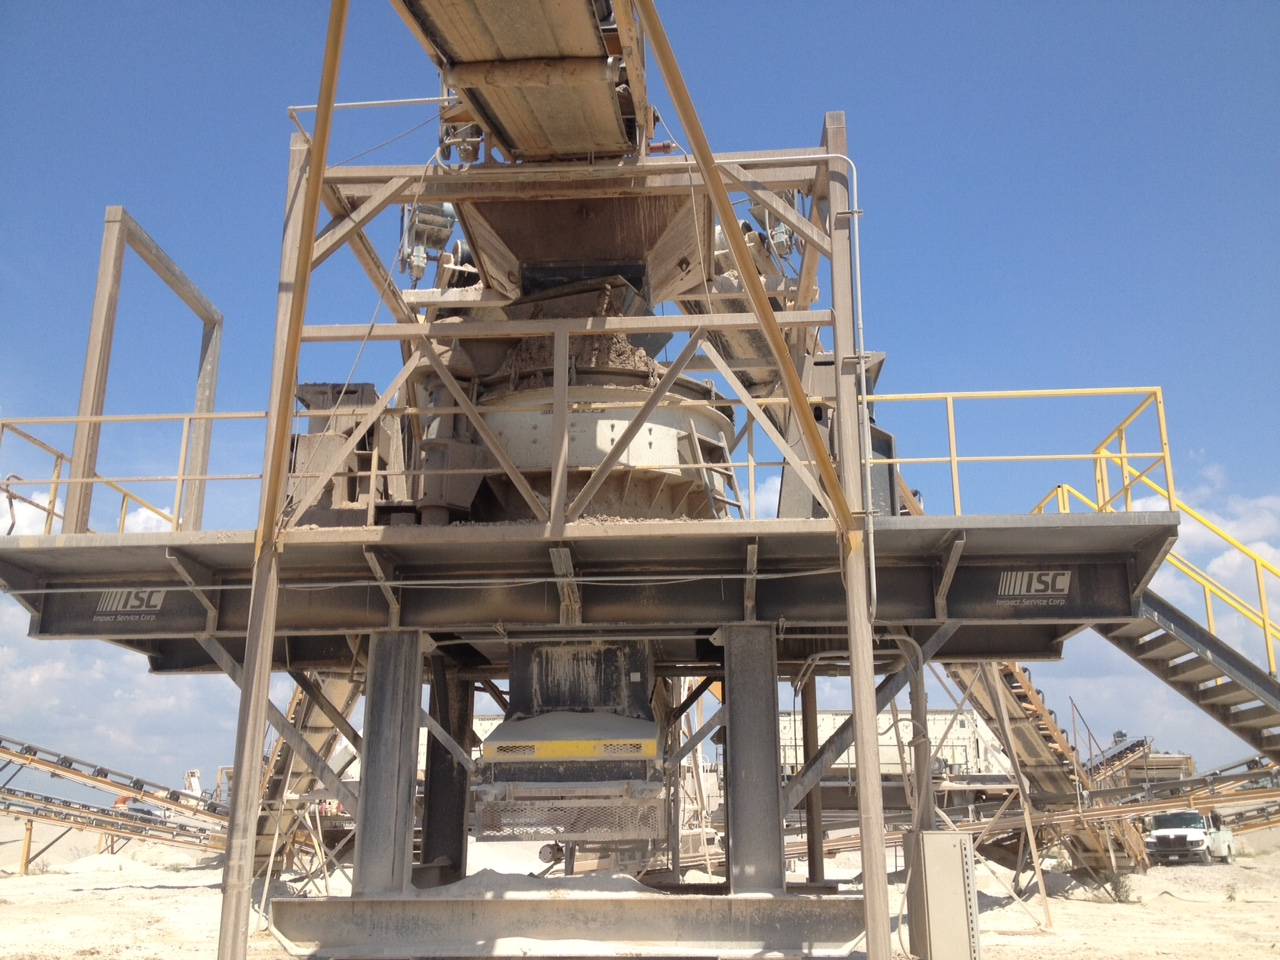 Hunter Industries, Ltd. Weisman Equipment Co. Uvalde 103 Crusher